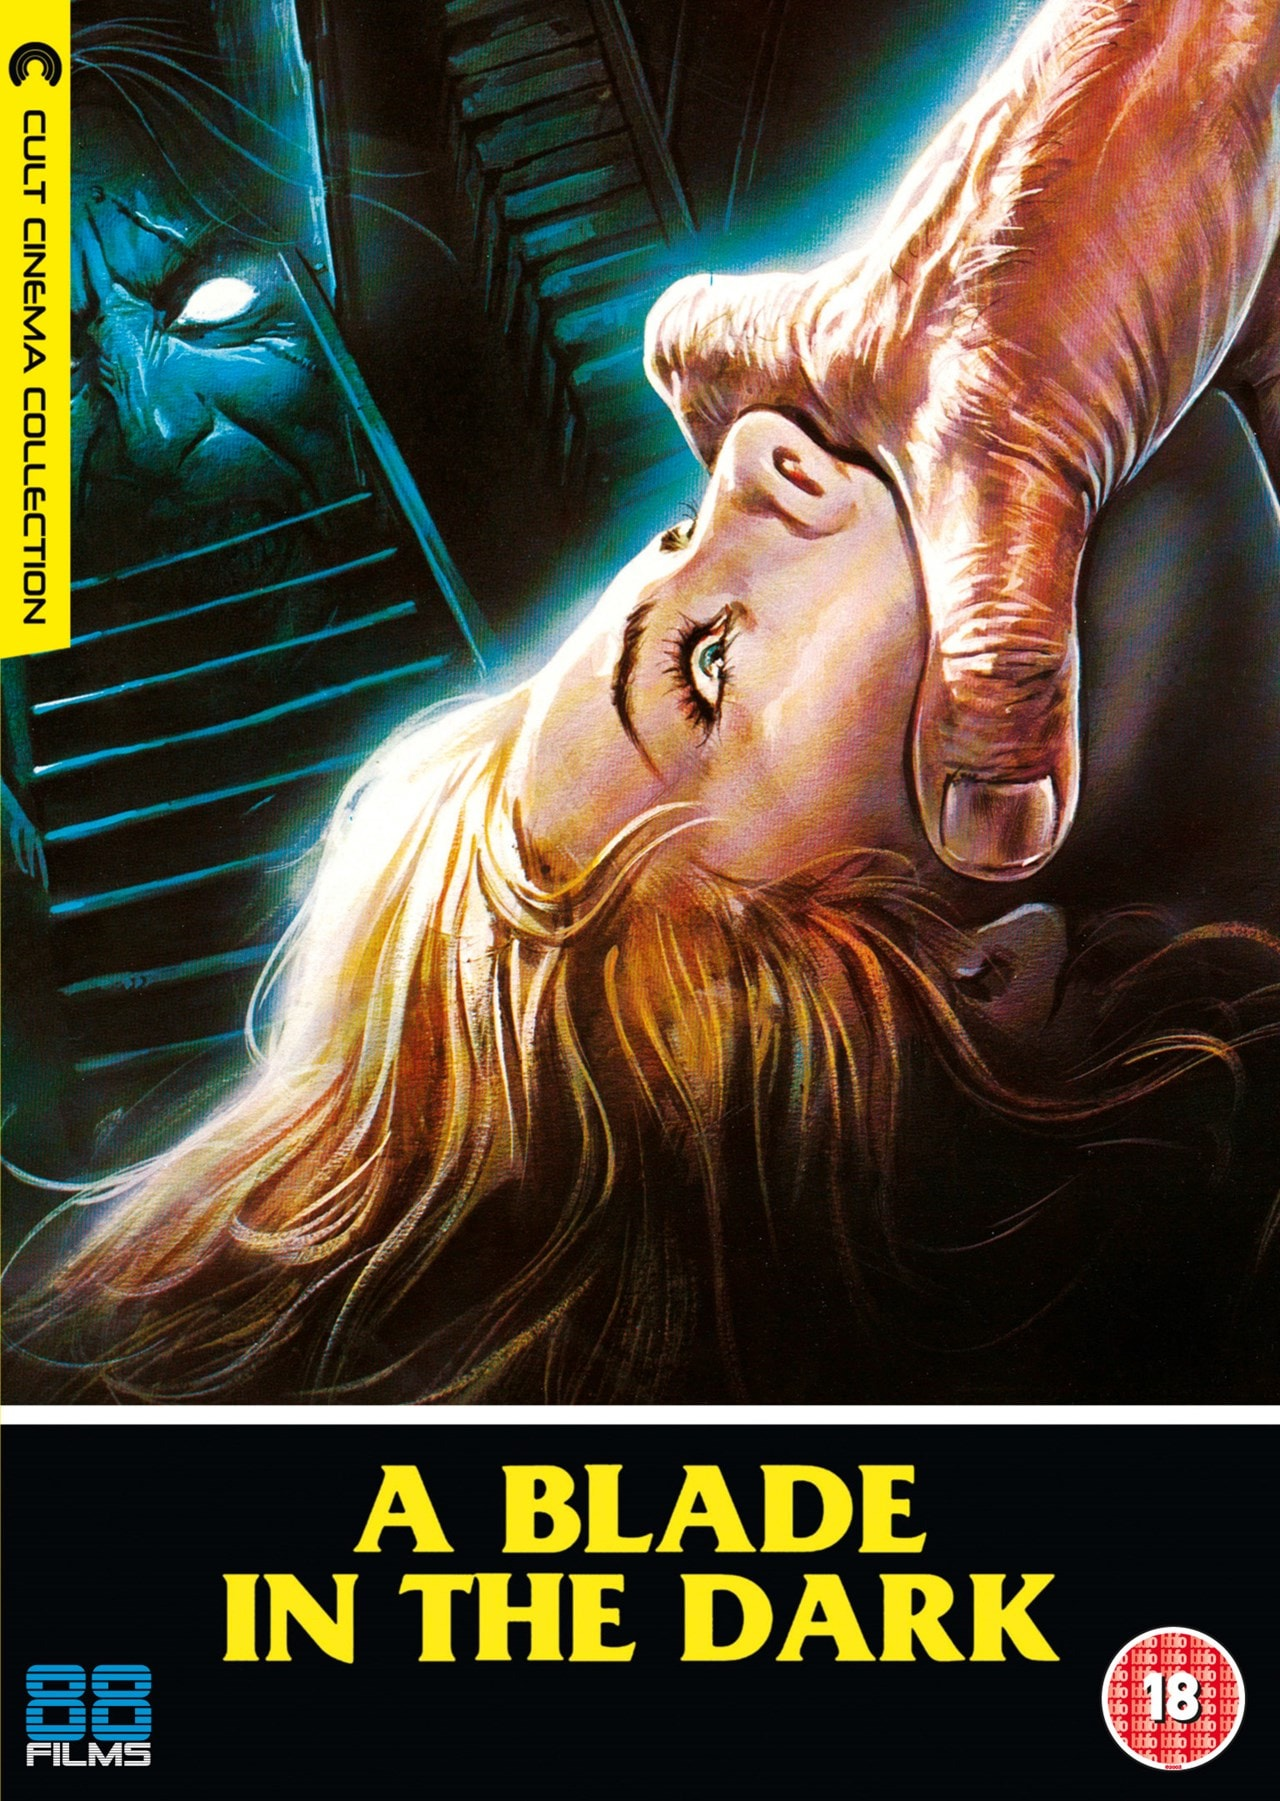 A Blade in the Dark - 1